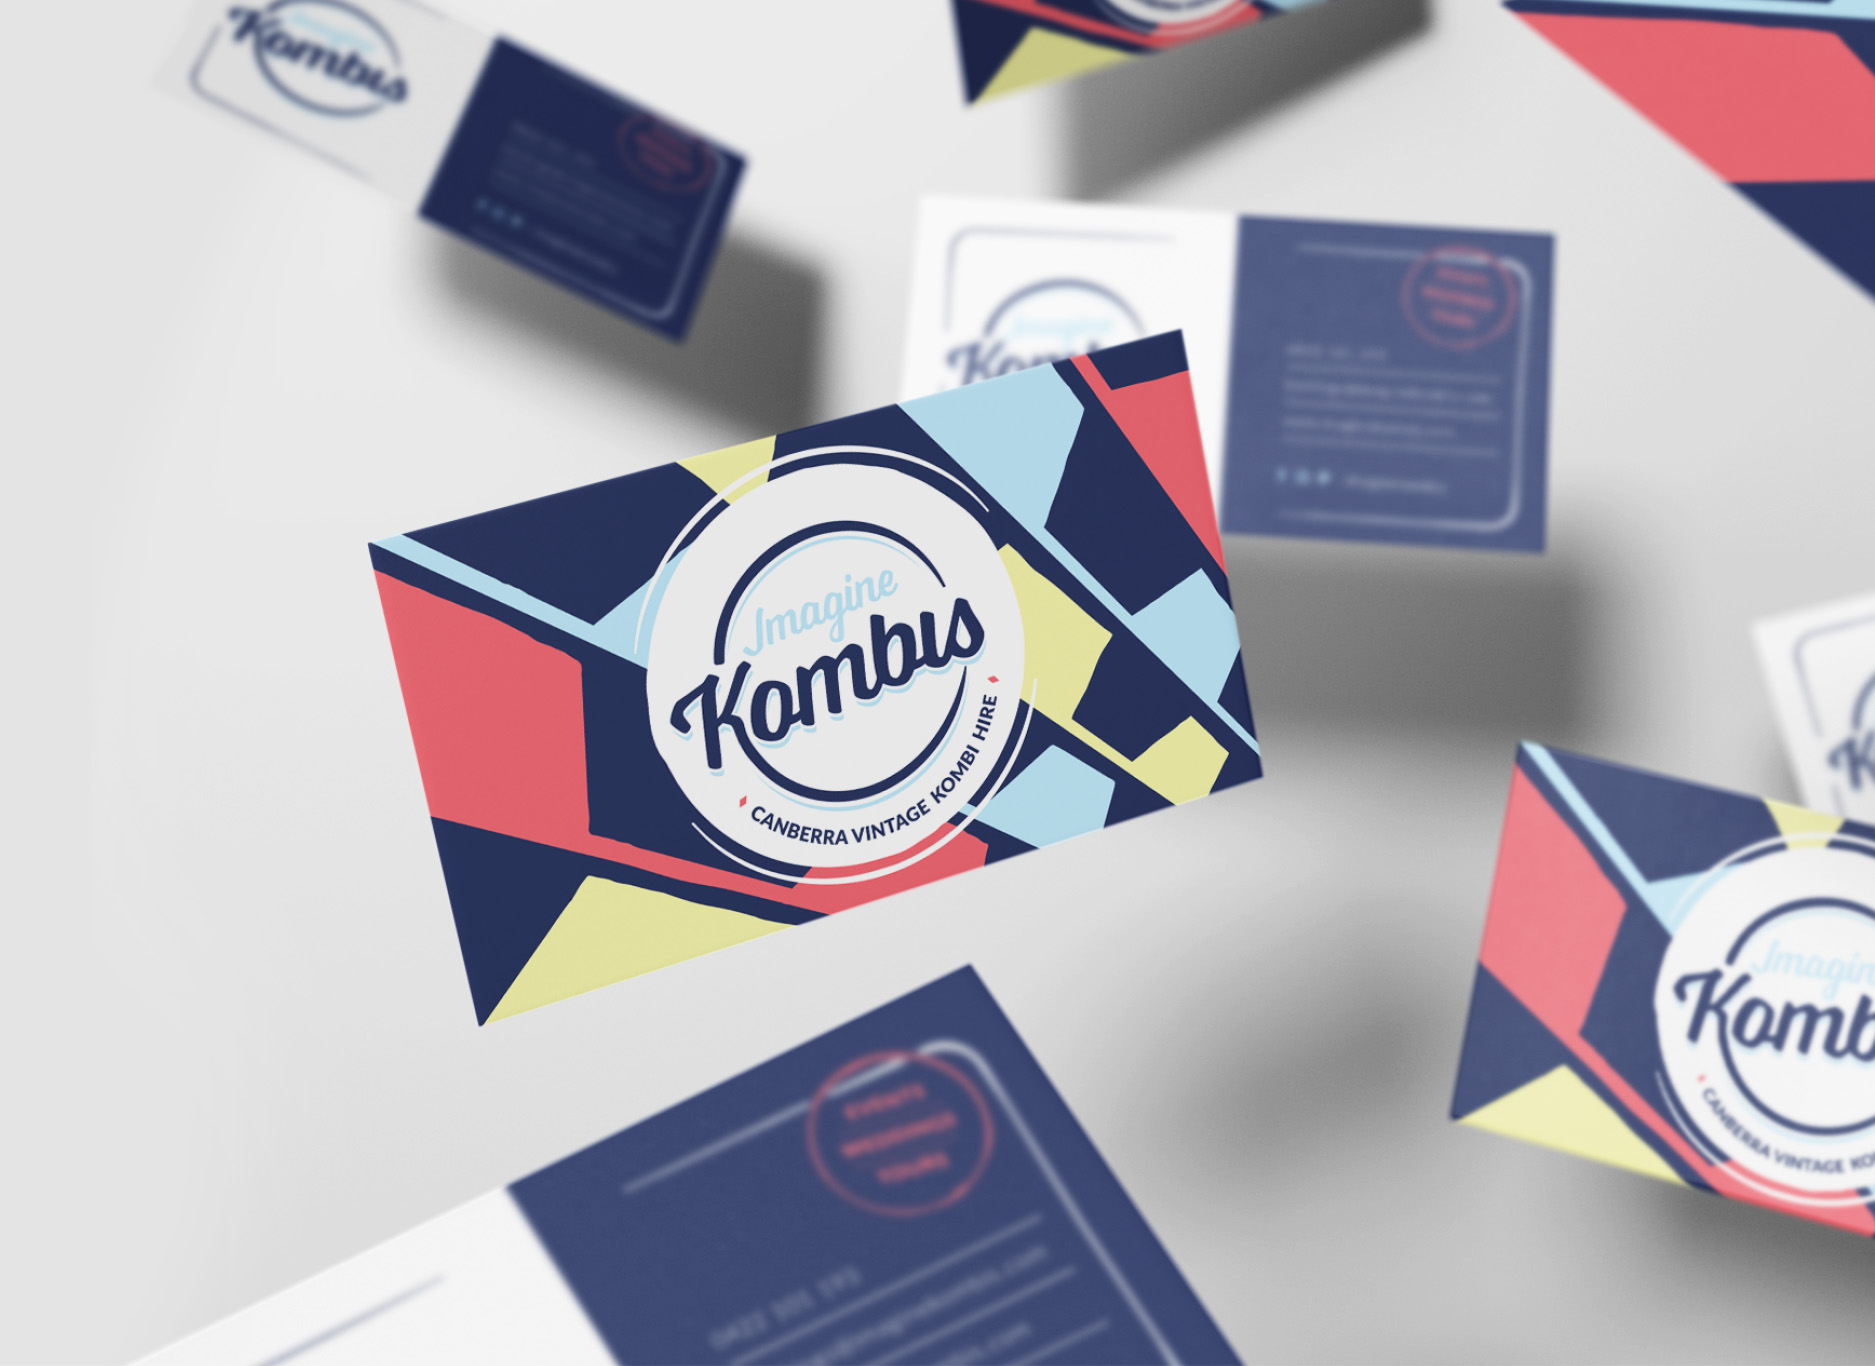 Image of Imagine Kombis business cards floating showing the back and front design